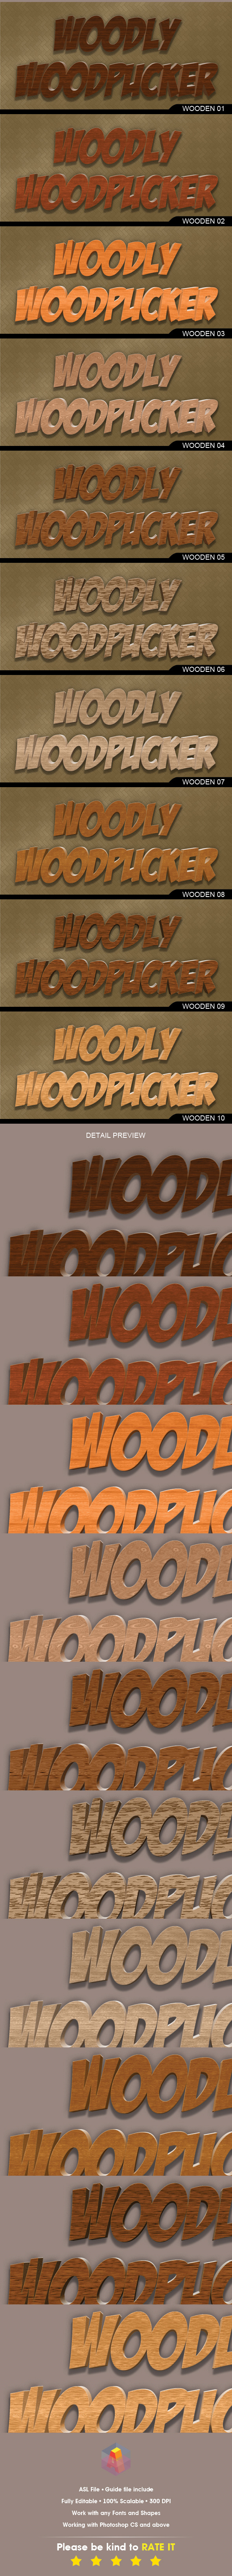 20 Realistic Wood Layer Style vol.1/2